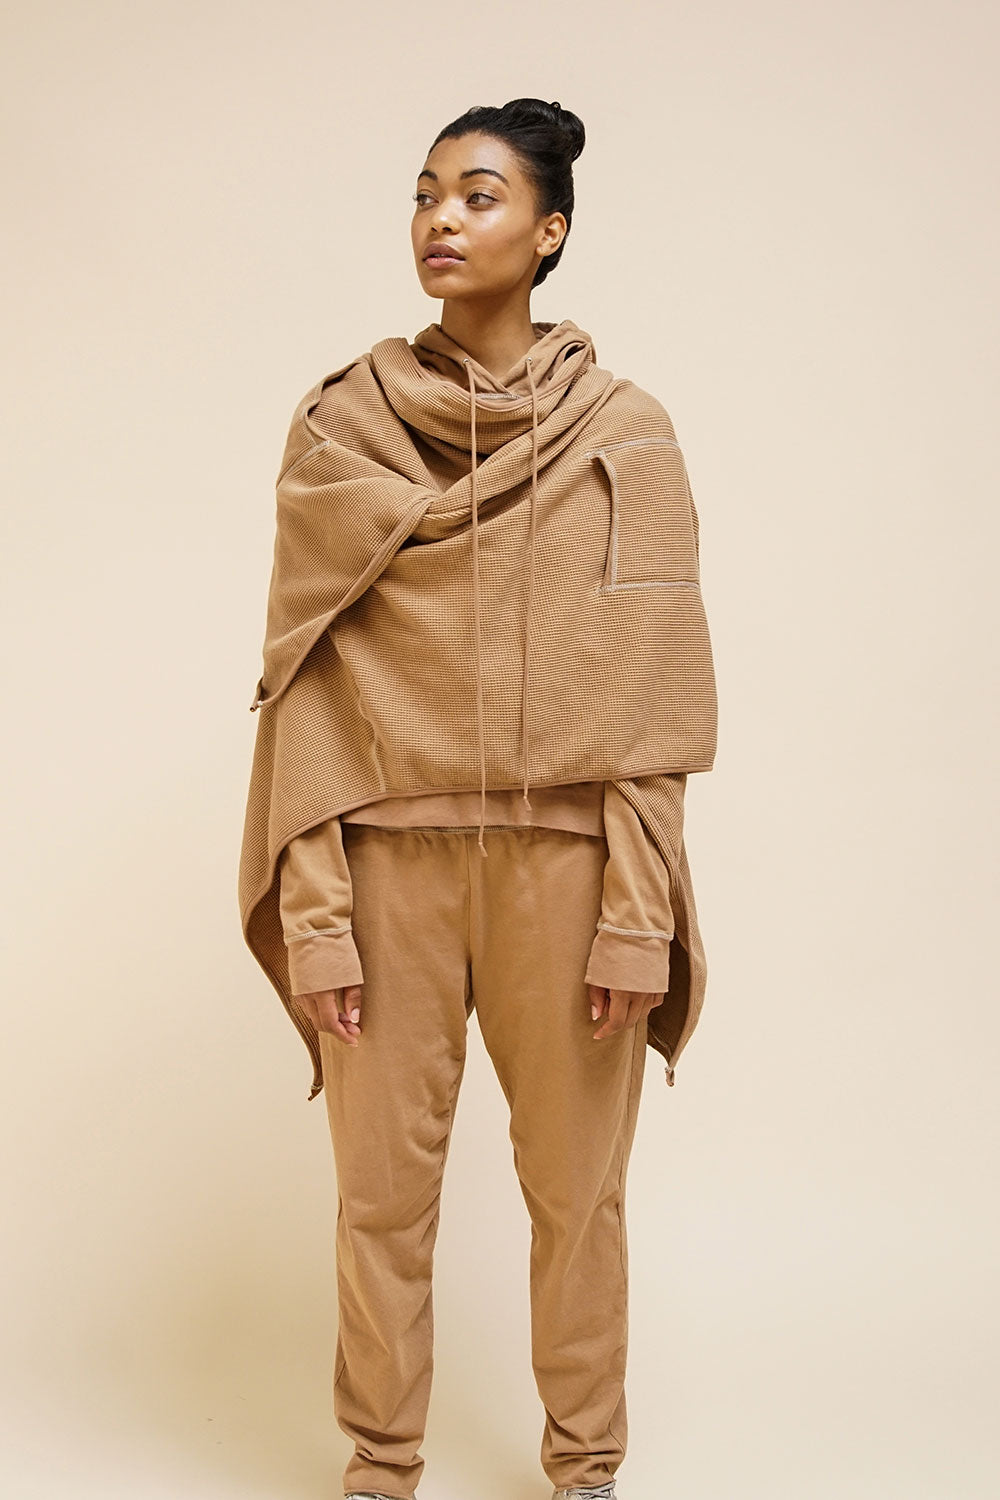 Alabama Chanin The Hoodie Machine Sewn Women's Cotton Hoodie in Camel Layered on Model